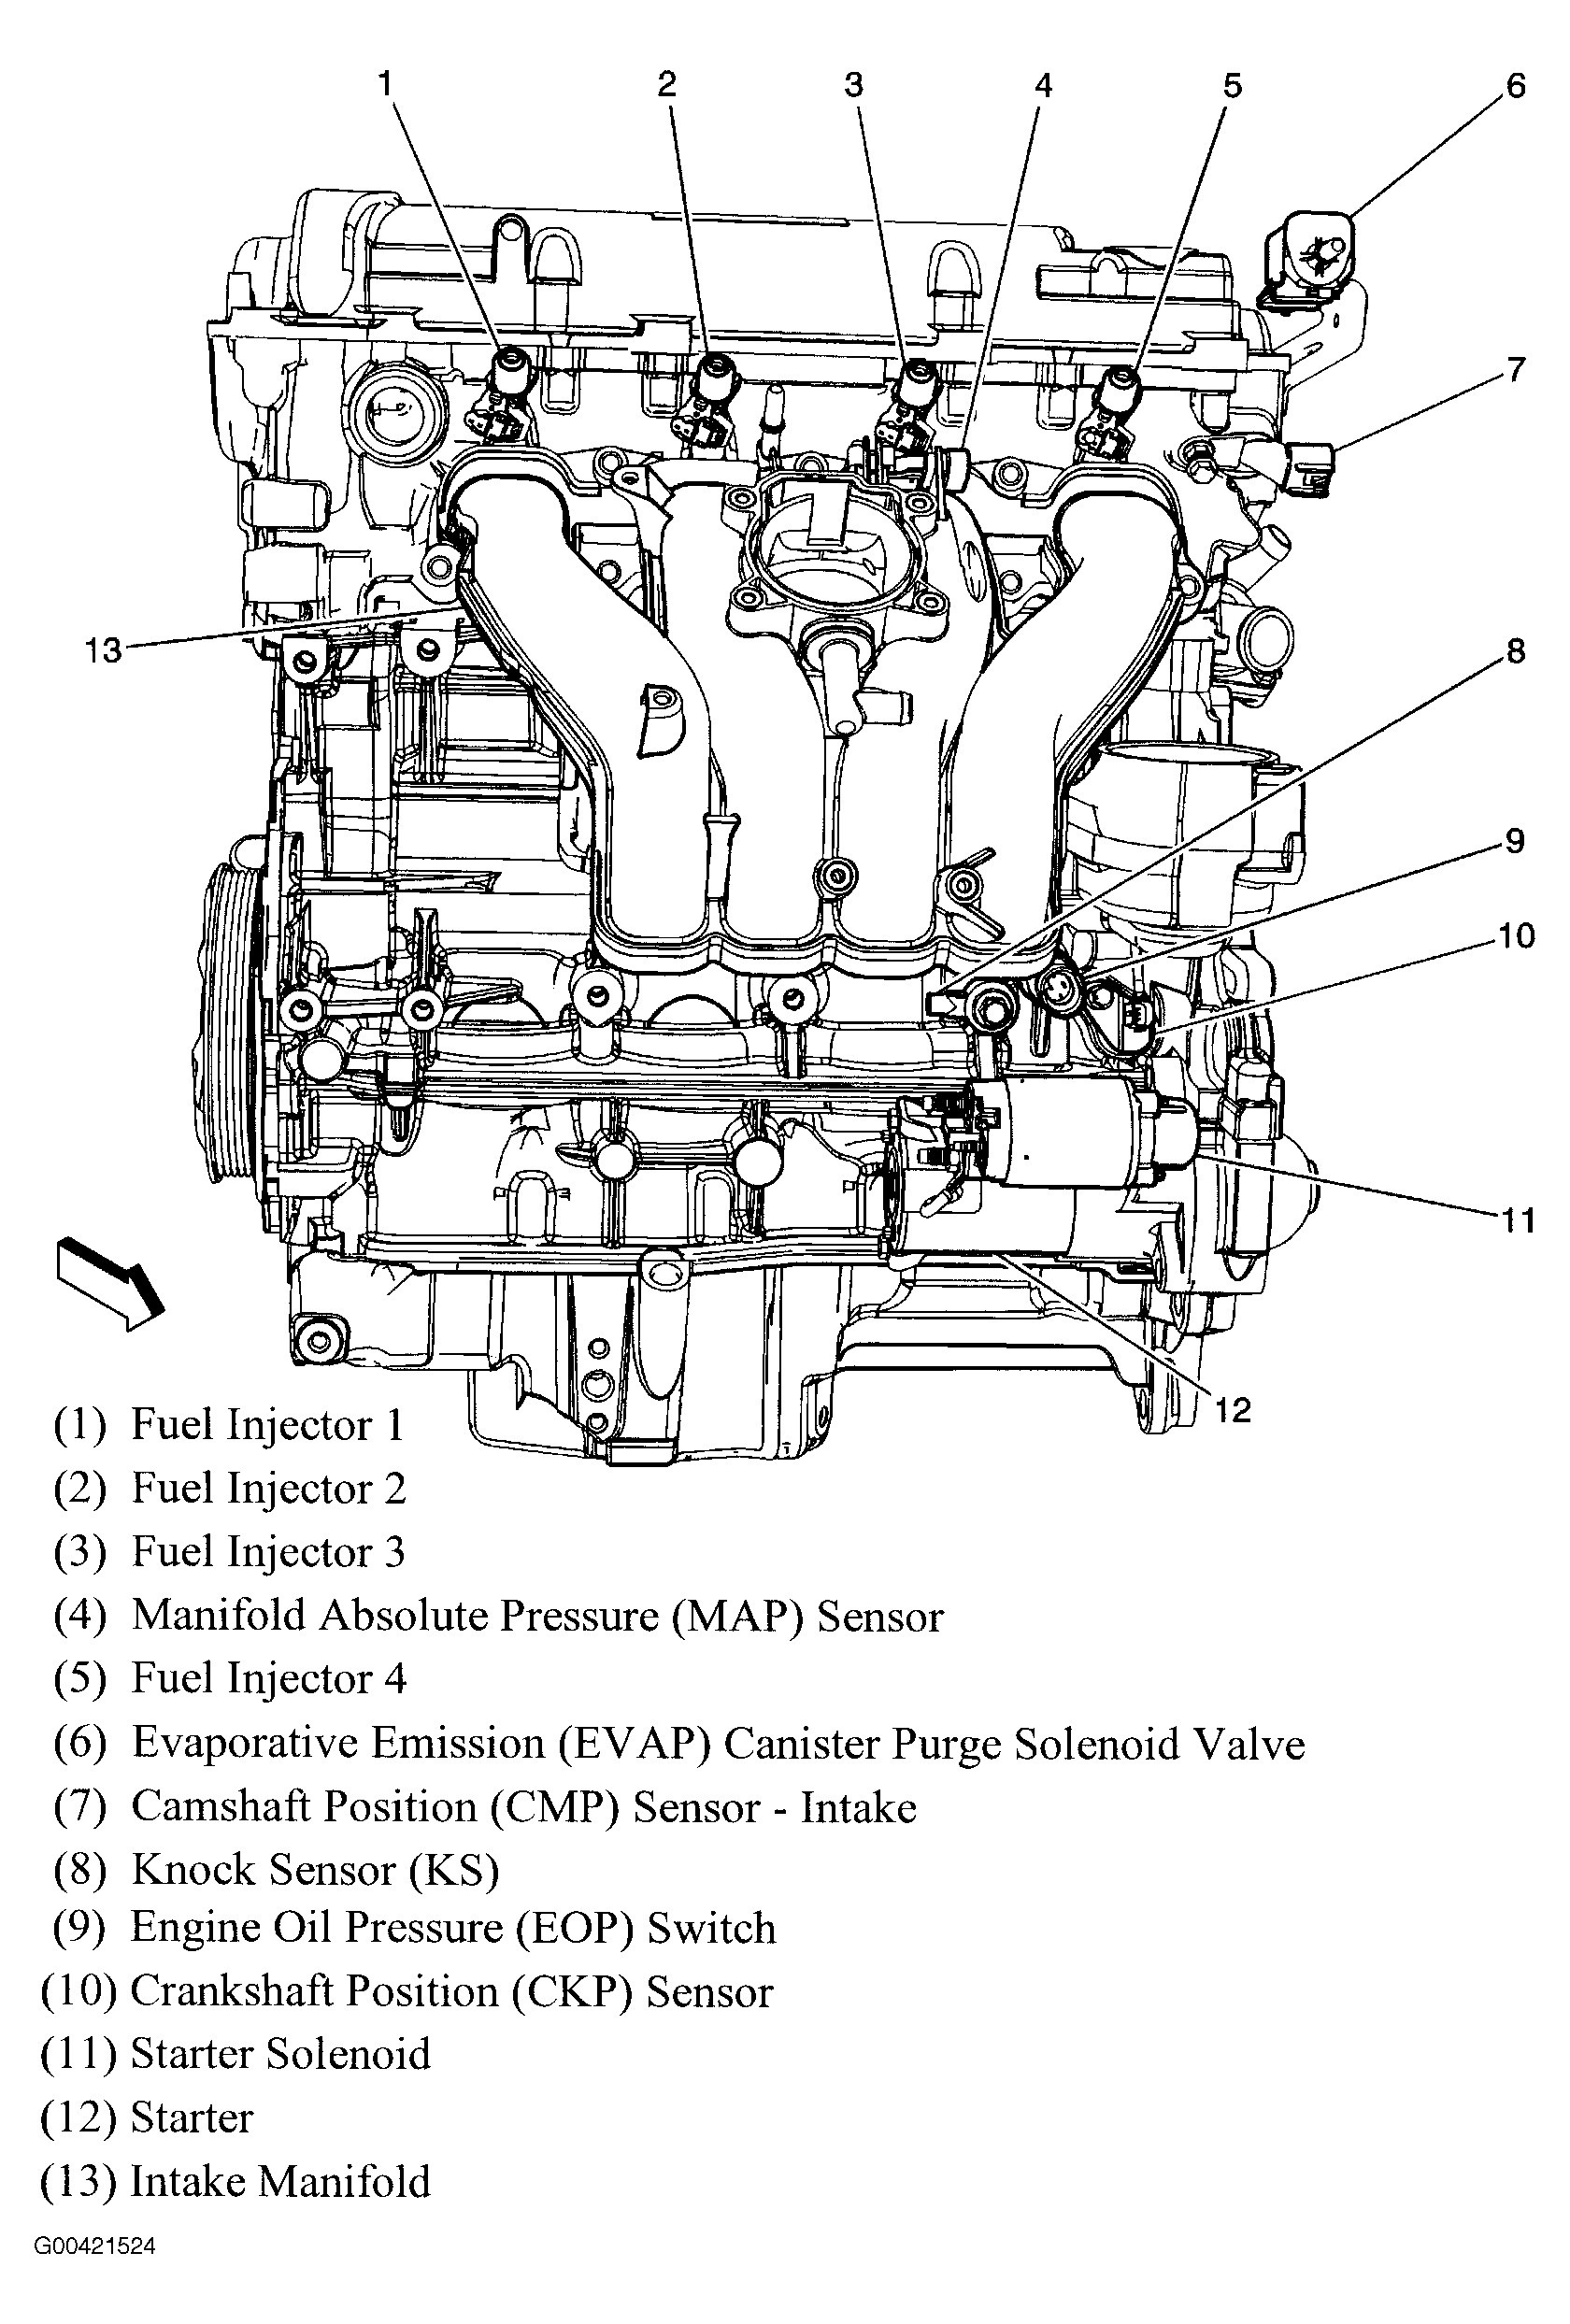 hight resolution of 2007 chevy trailblazer engine diagram wiring diagram toolbox 2007 chevy trailblazer fuse box diagram 2007 trailblazer